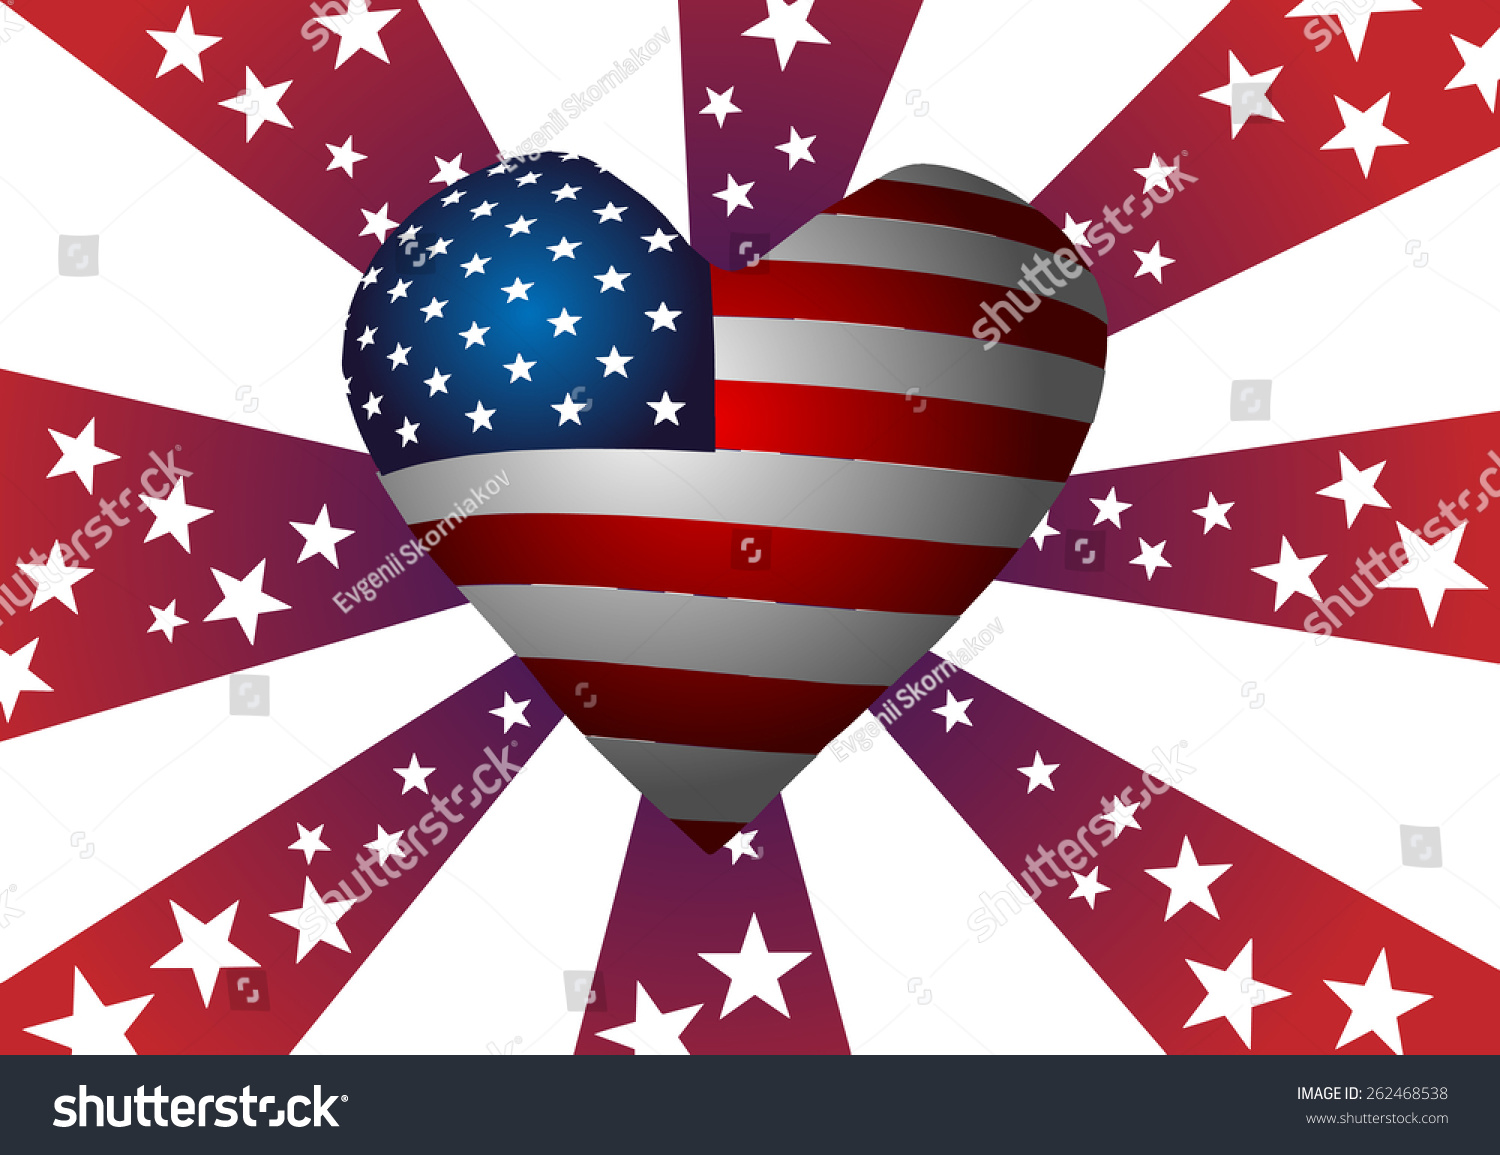 Vector illustration symbolism american flag heart stock vector the symbolism of the american flag heart stars and stripes biocorpaavc Images